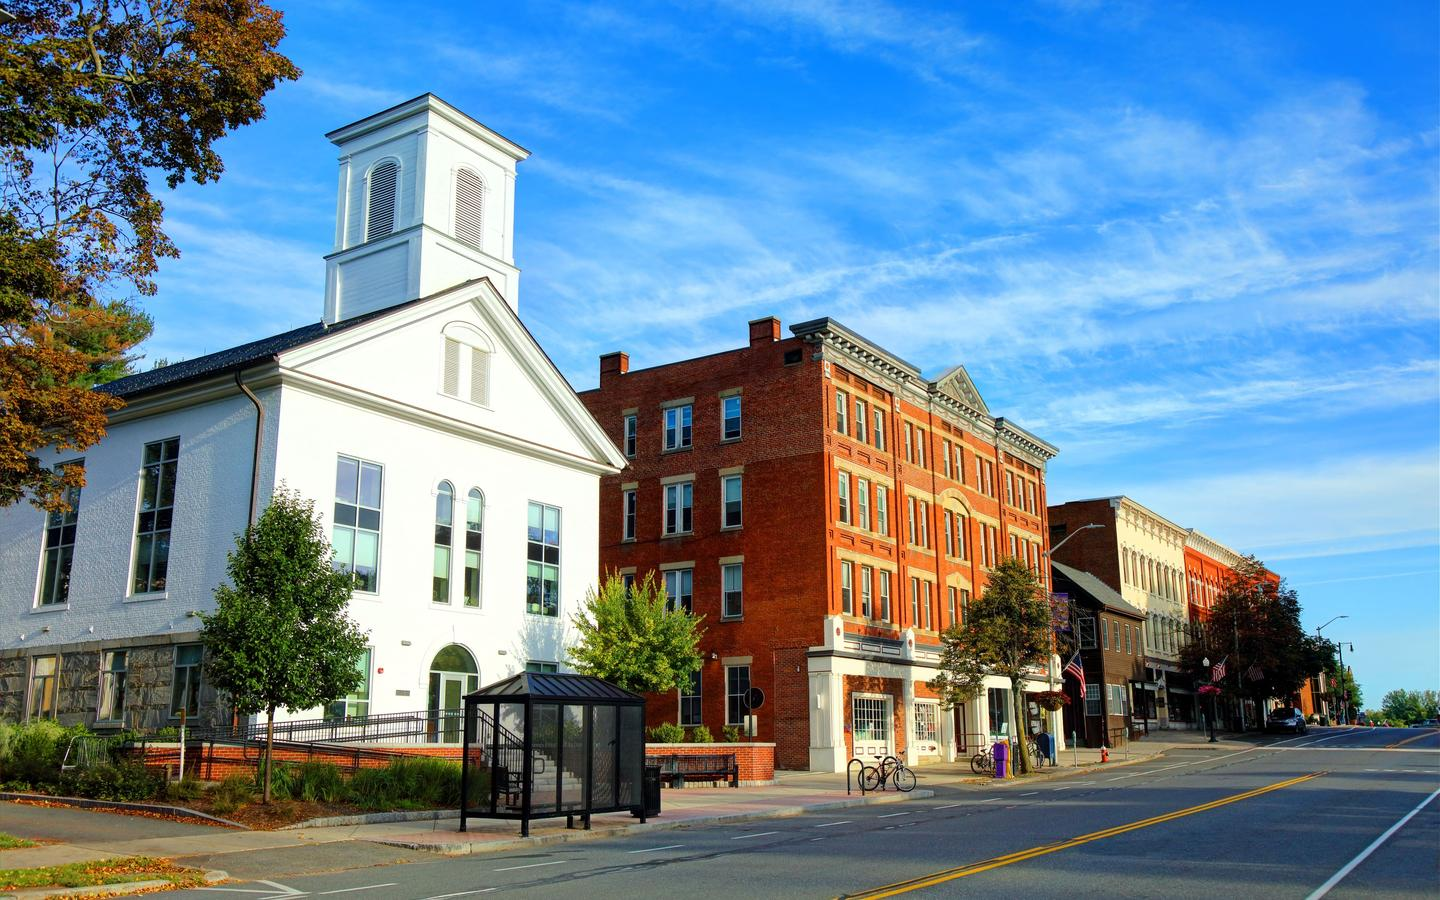 Hotels in Amherst